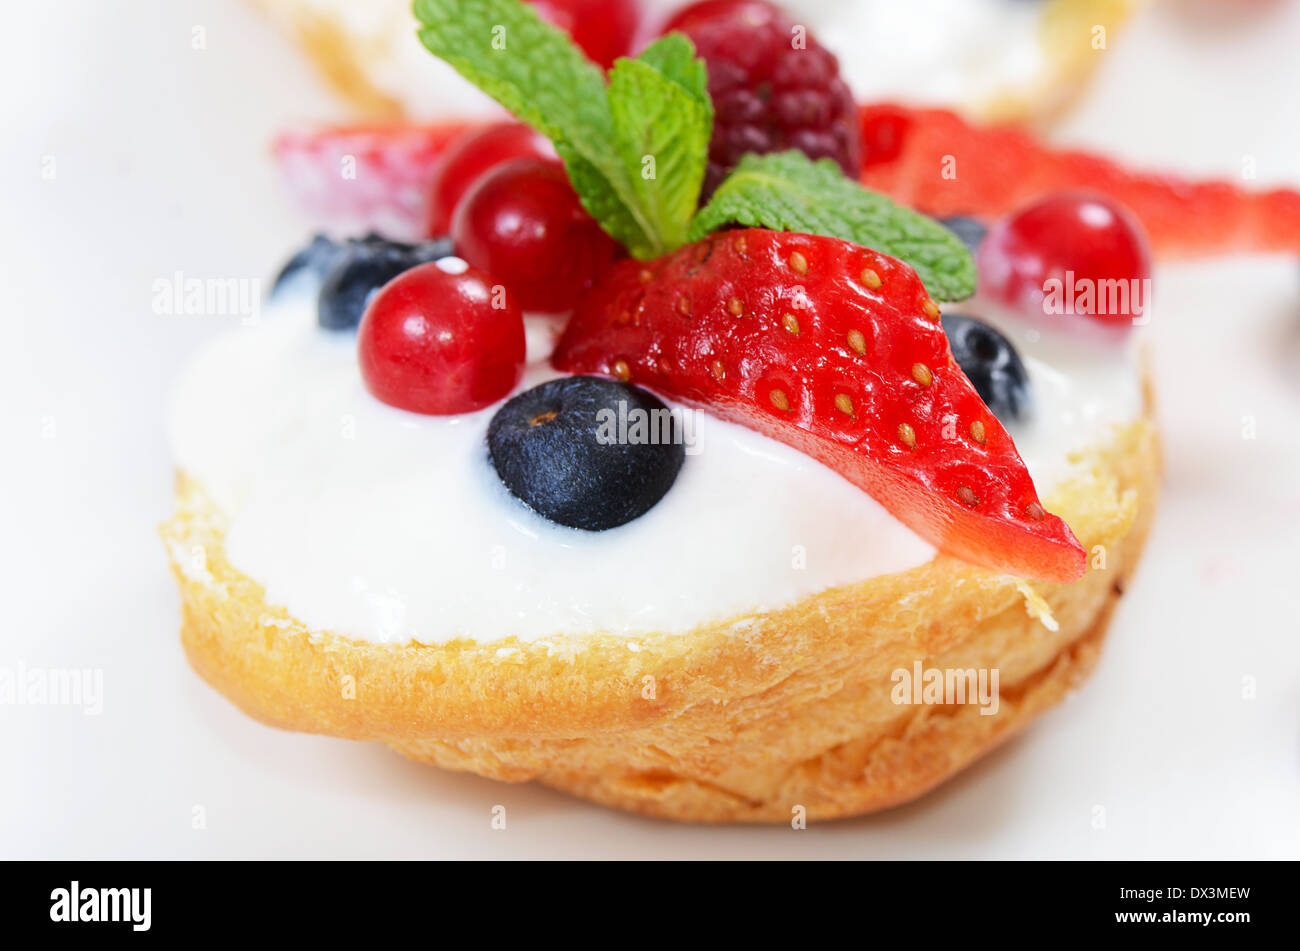 Profiteroles with berries currant strawberries and blueberries Stock Photo